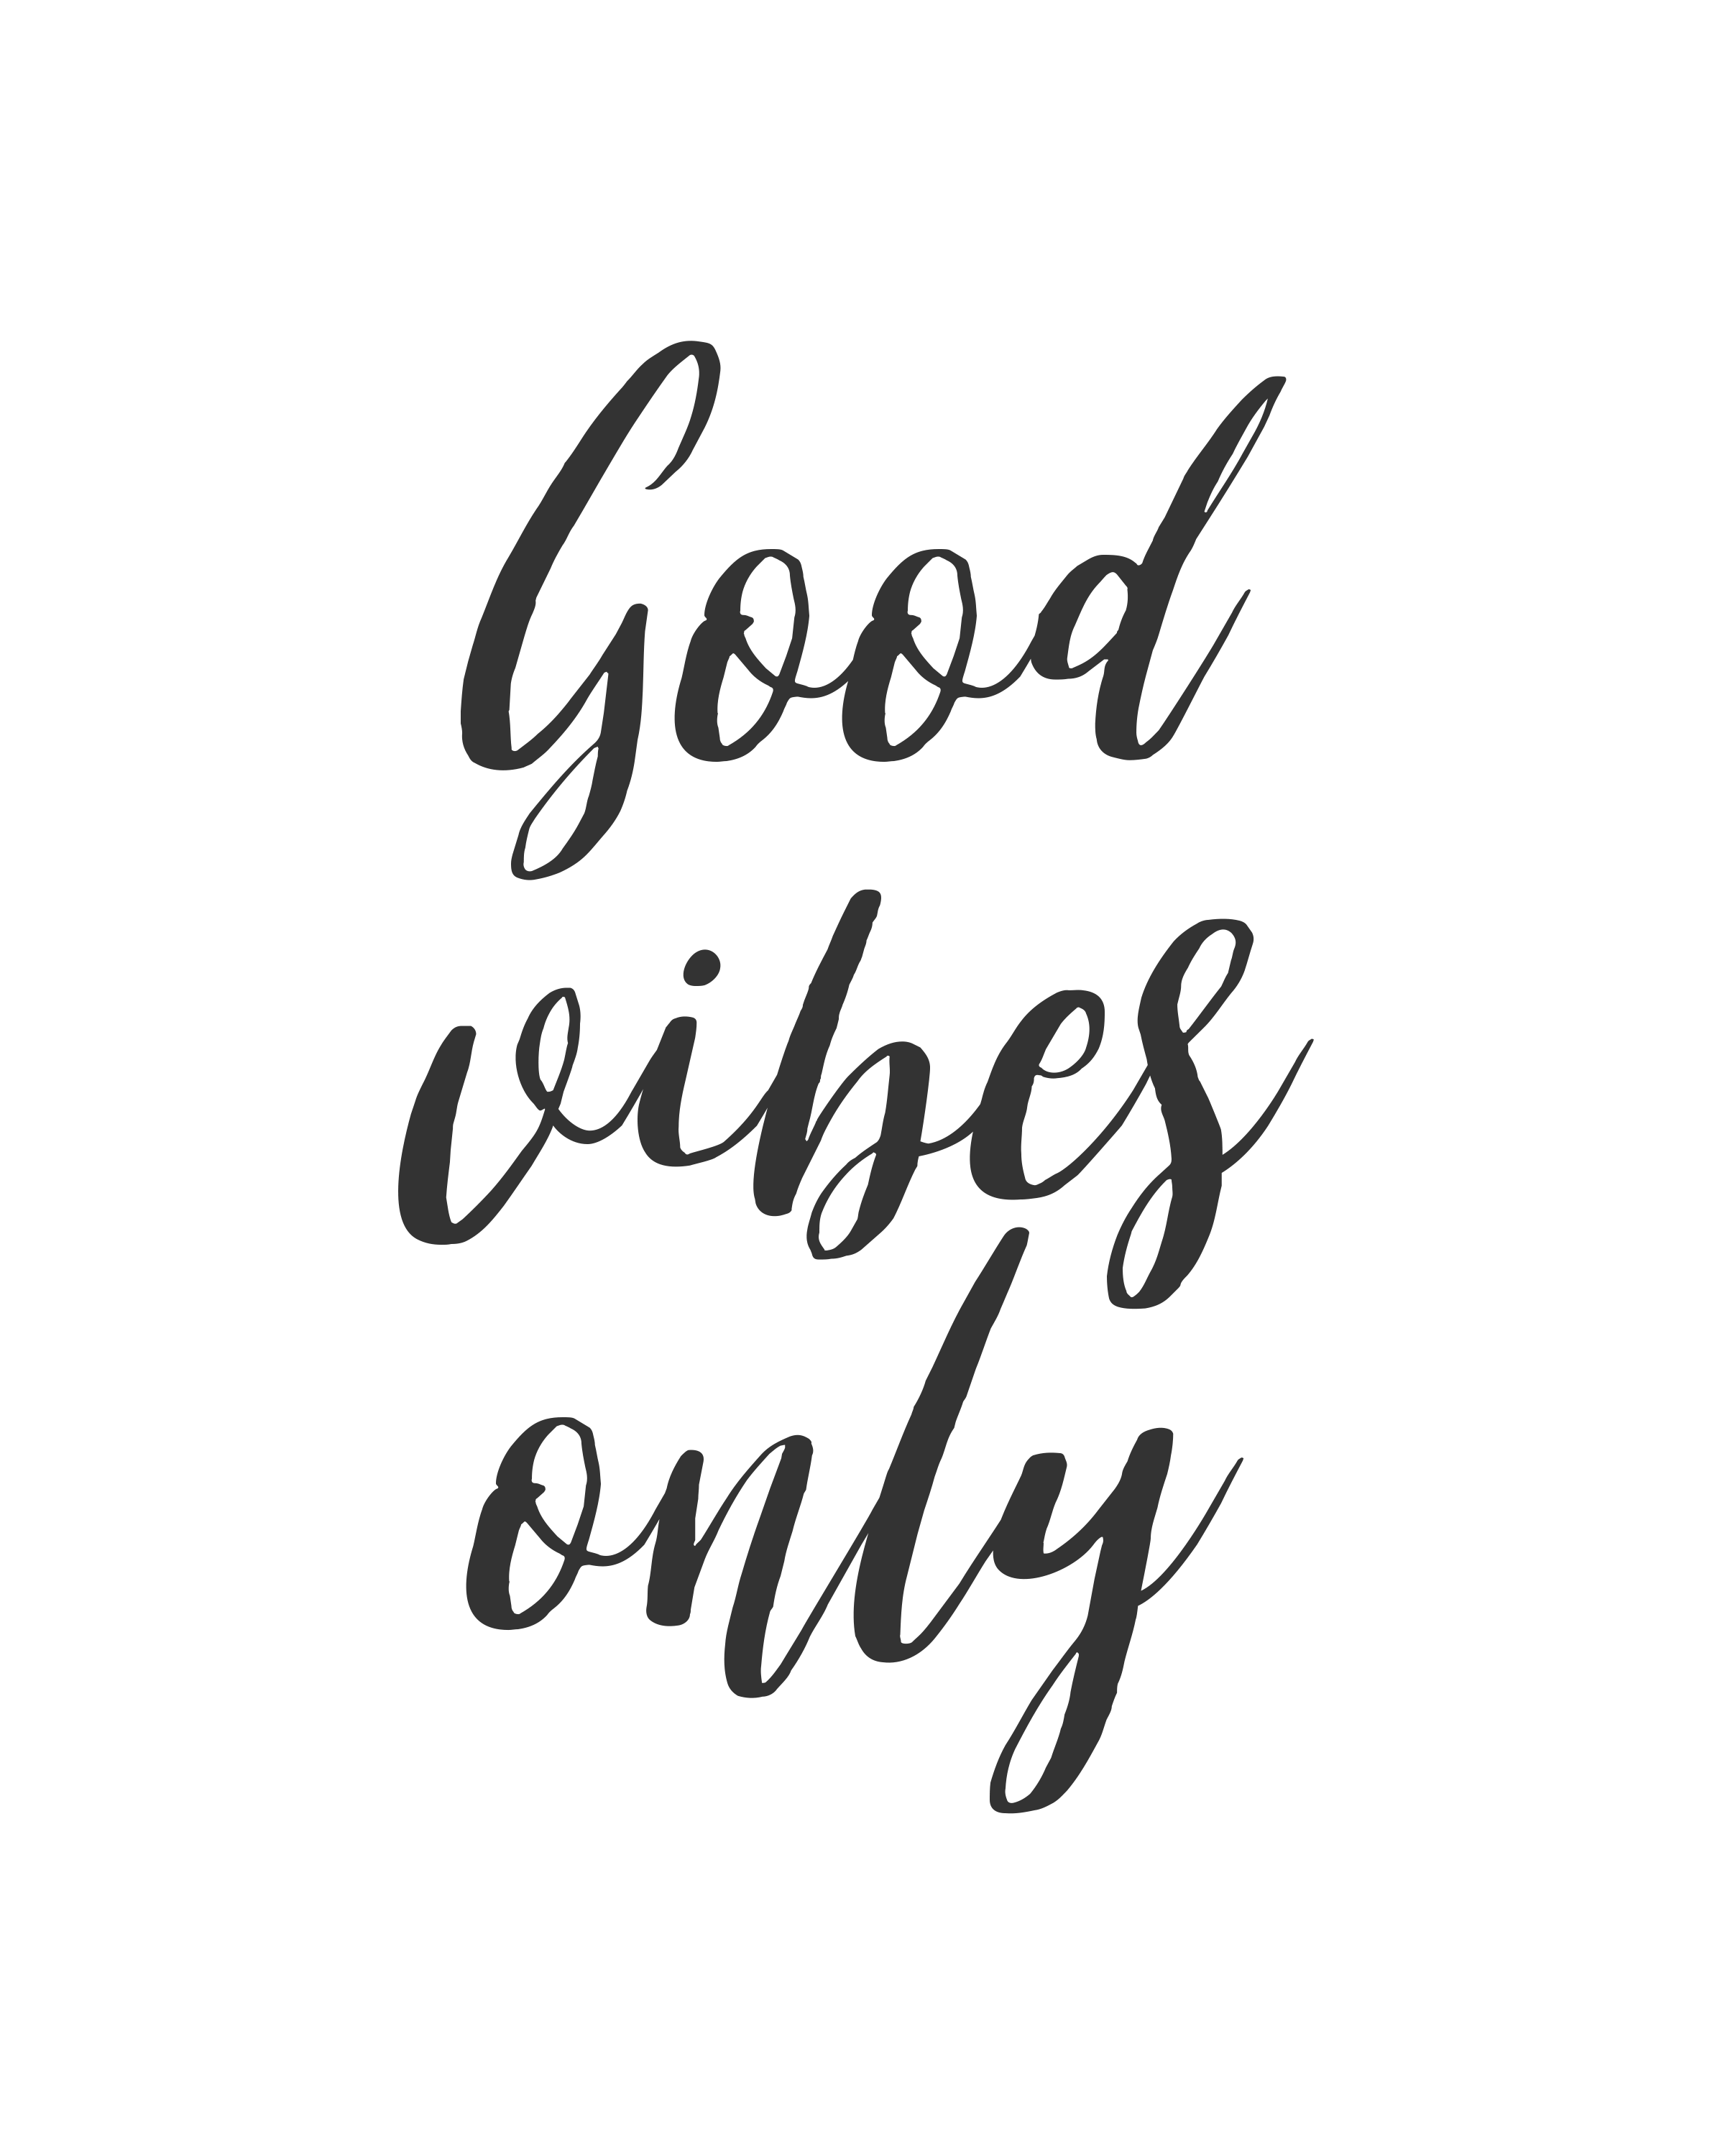 Motivational Inspirational Quotes: Good Vibes Only Inspirational Poster